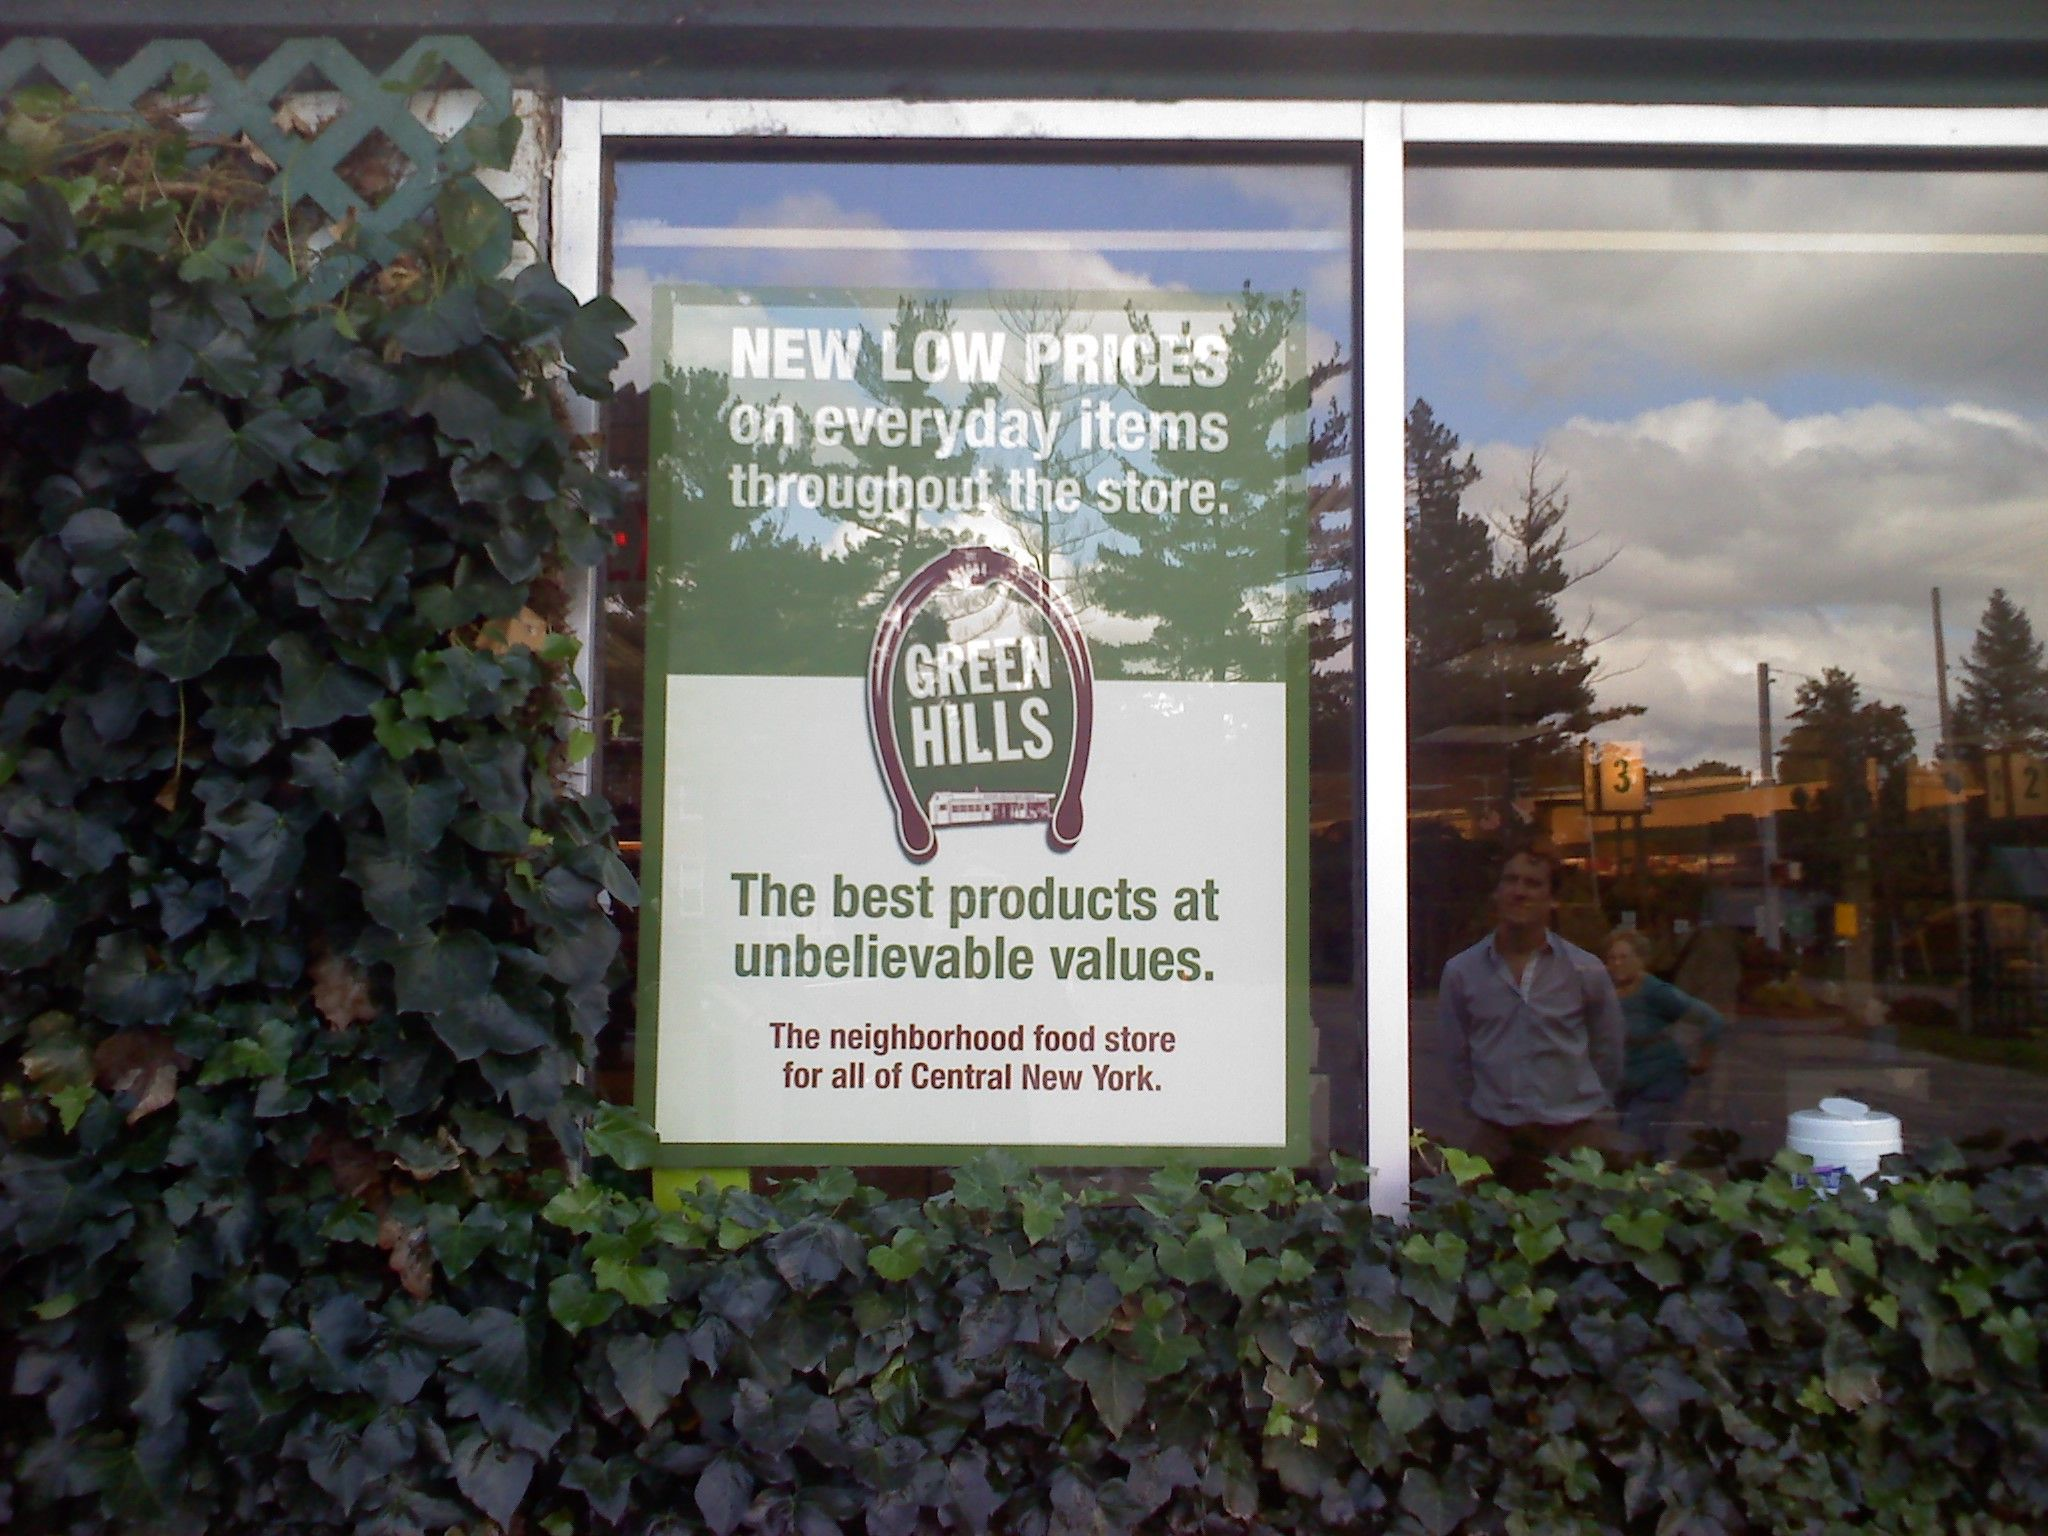 Green Hills Window signs